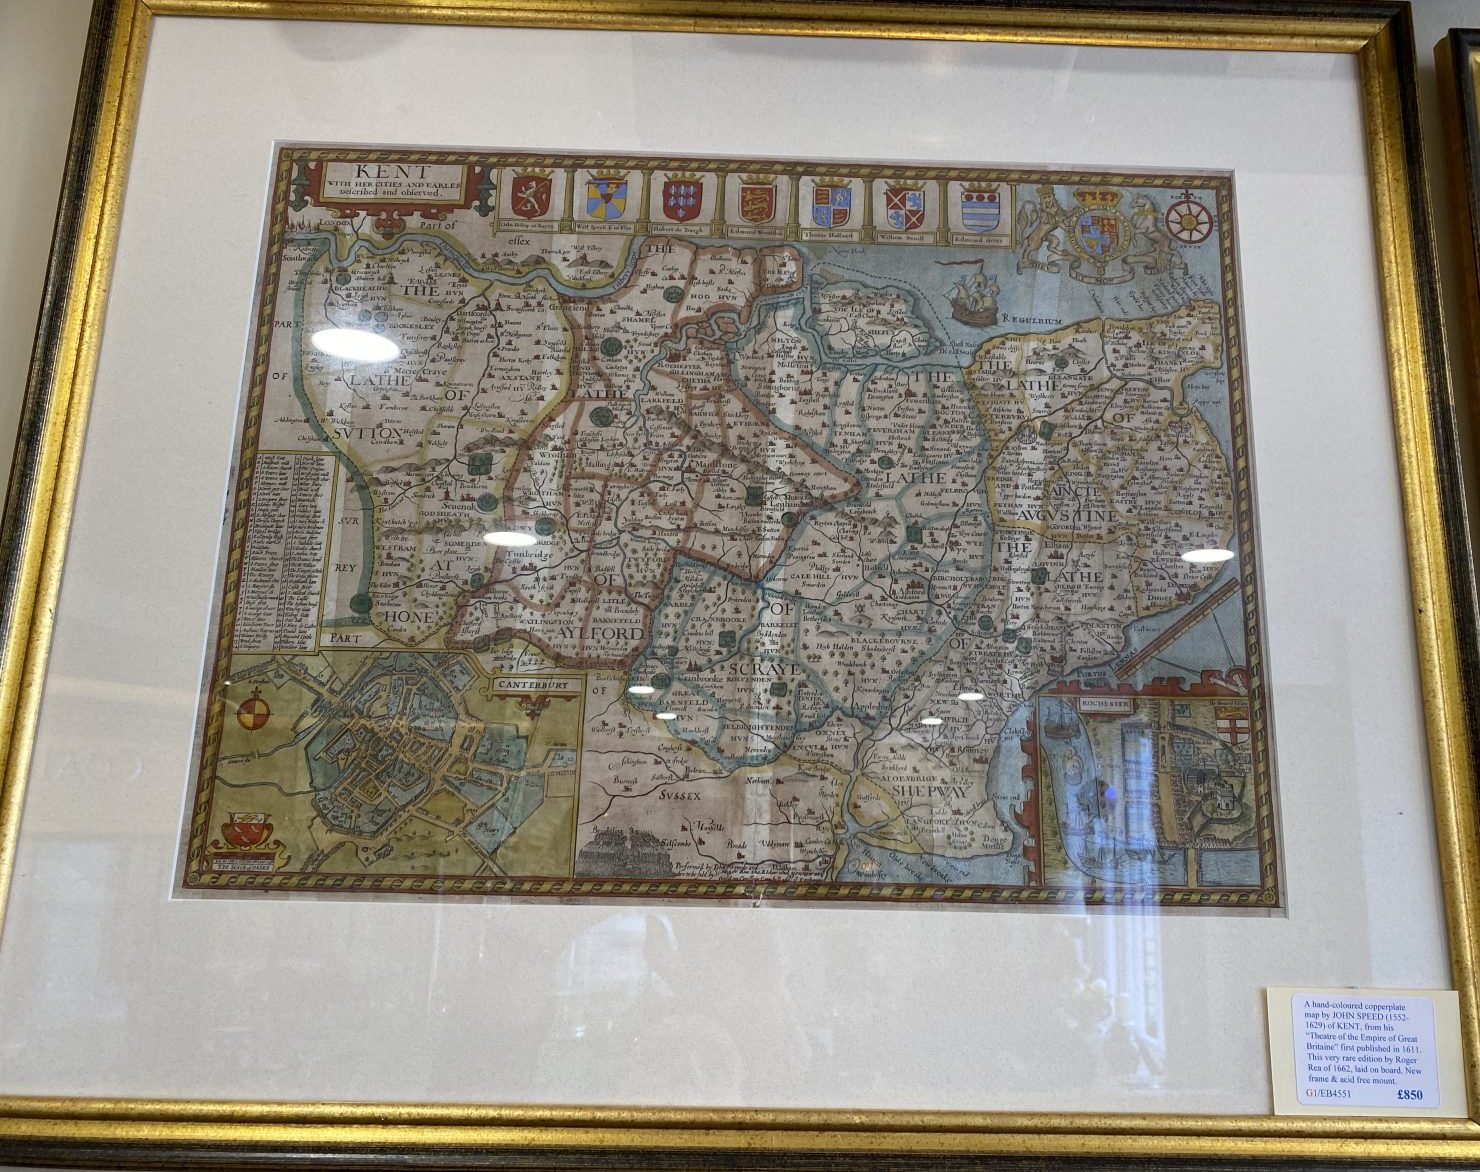 G1 - A Hand-coloured copperplate map of KENT by John Speed (1552-1629), from his Theatre of the Empire of Great Britaine. This is the very rare 1662 edition published by Roger Rea. Laid on board, in a new frame and acid free mount.  £850